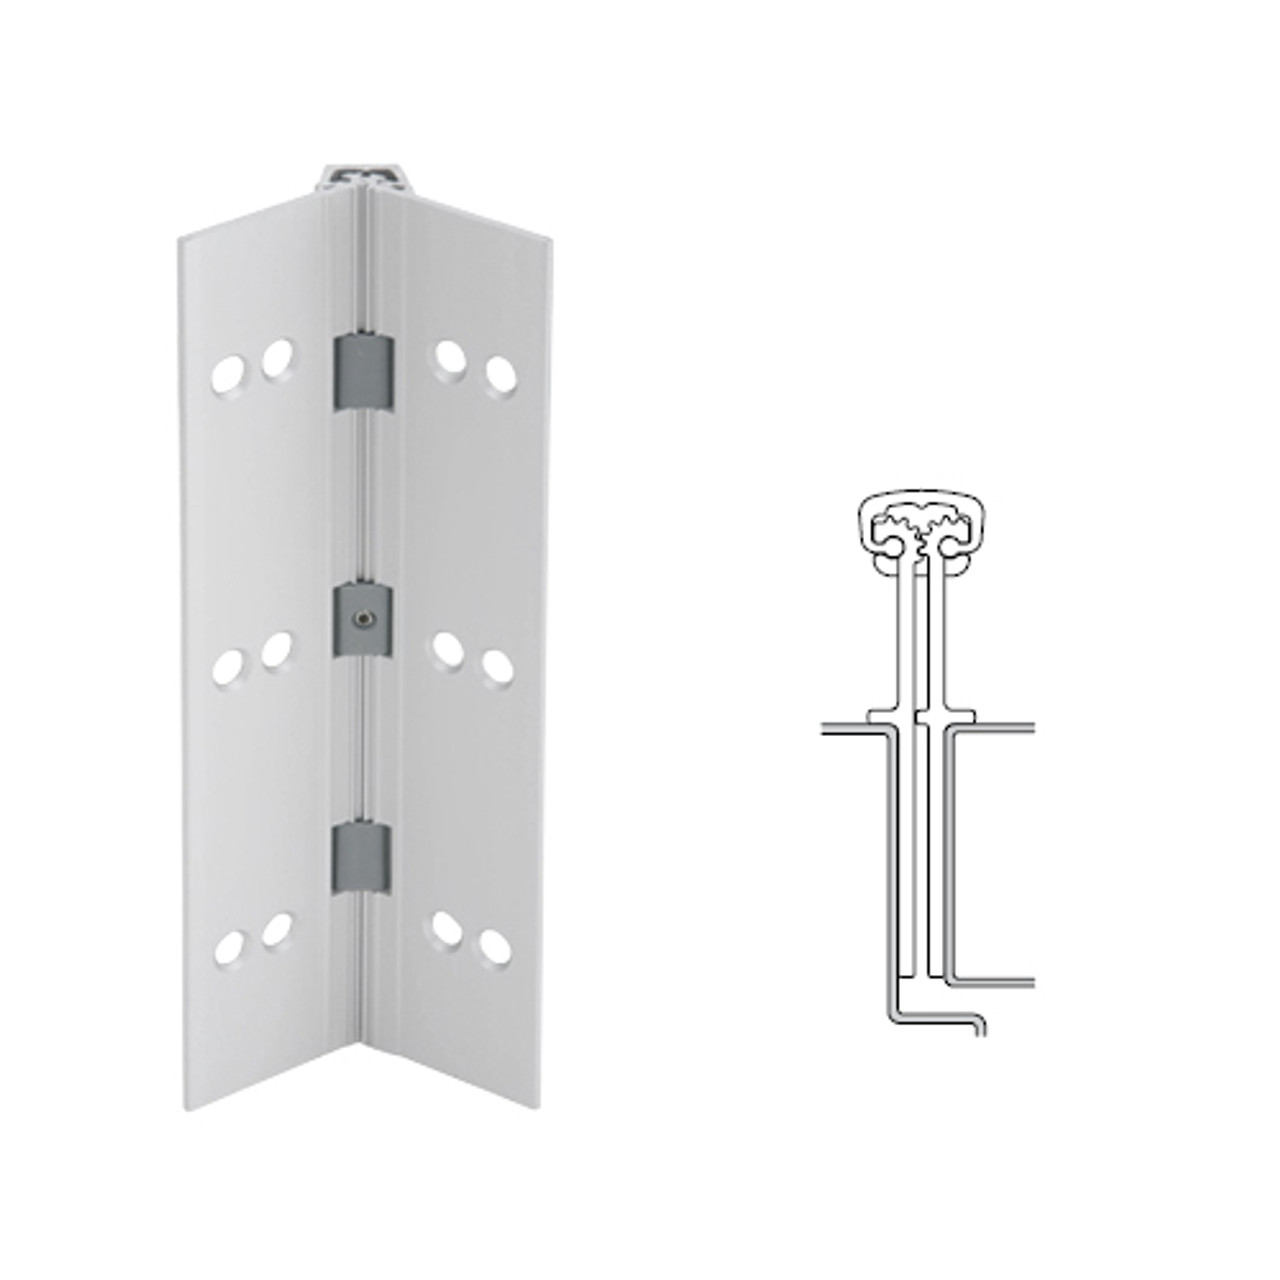 040XY-US28-83-TF IVES Full Mortise Continuous Geared Hinges with Thread Forming Screws in Satin Aluminum